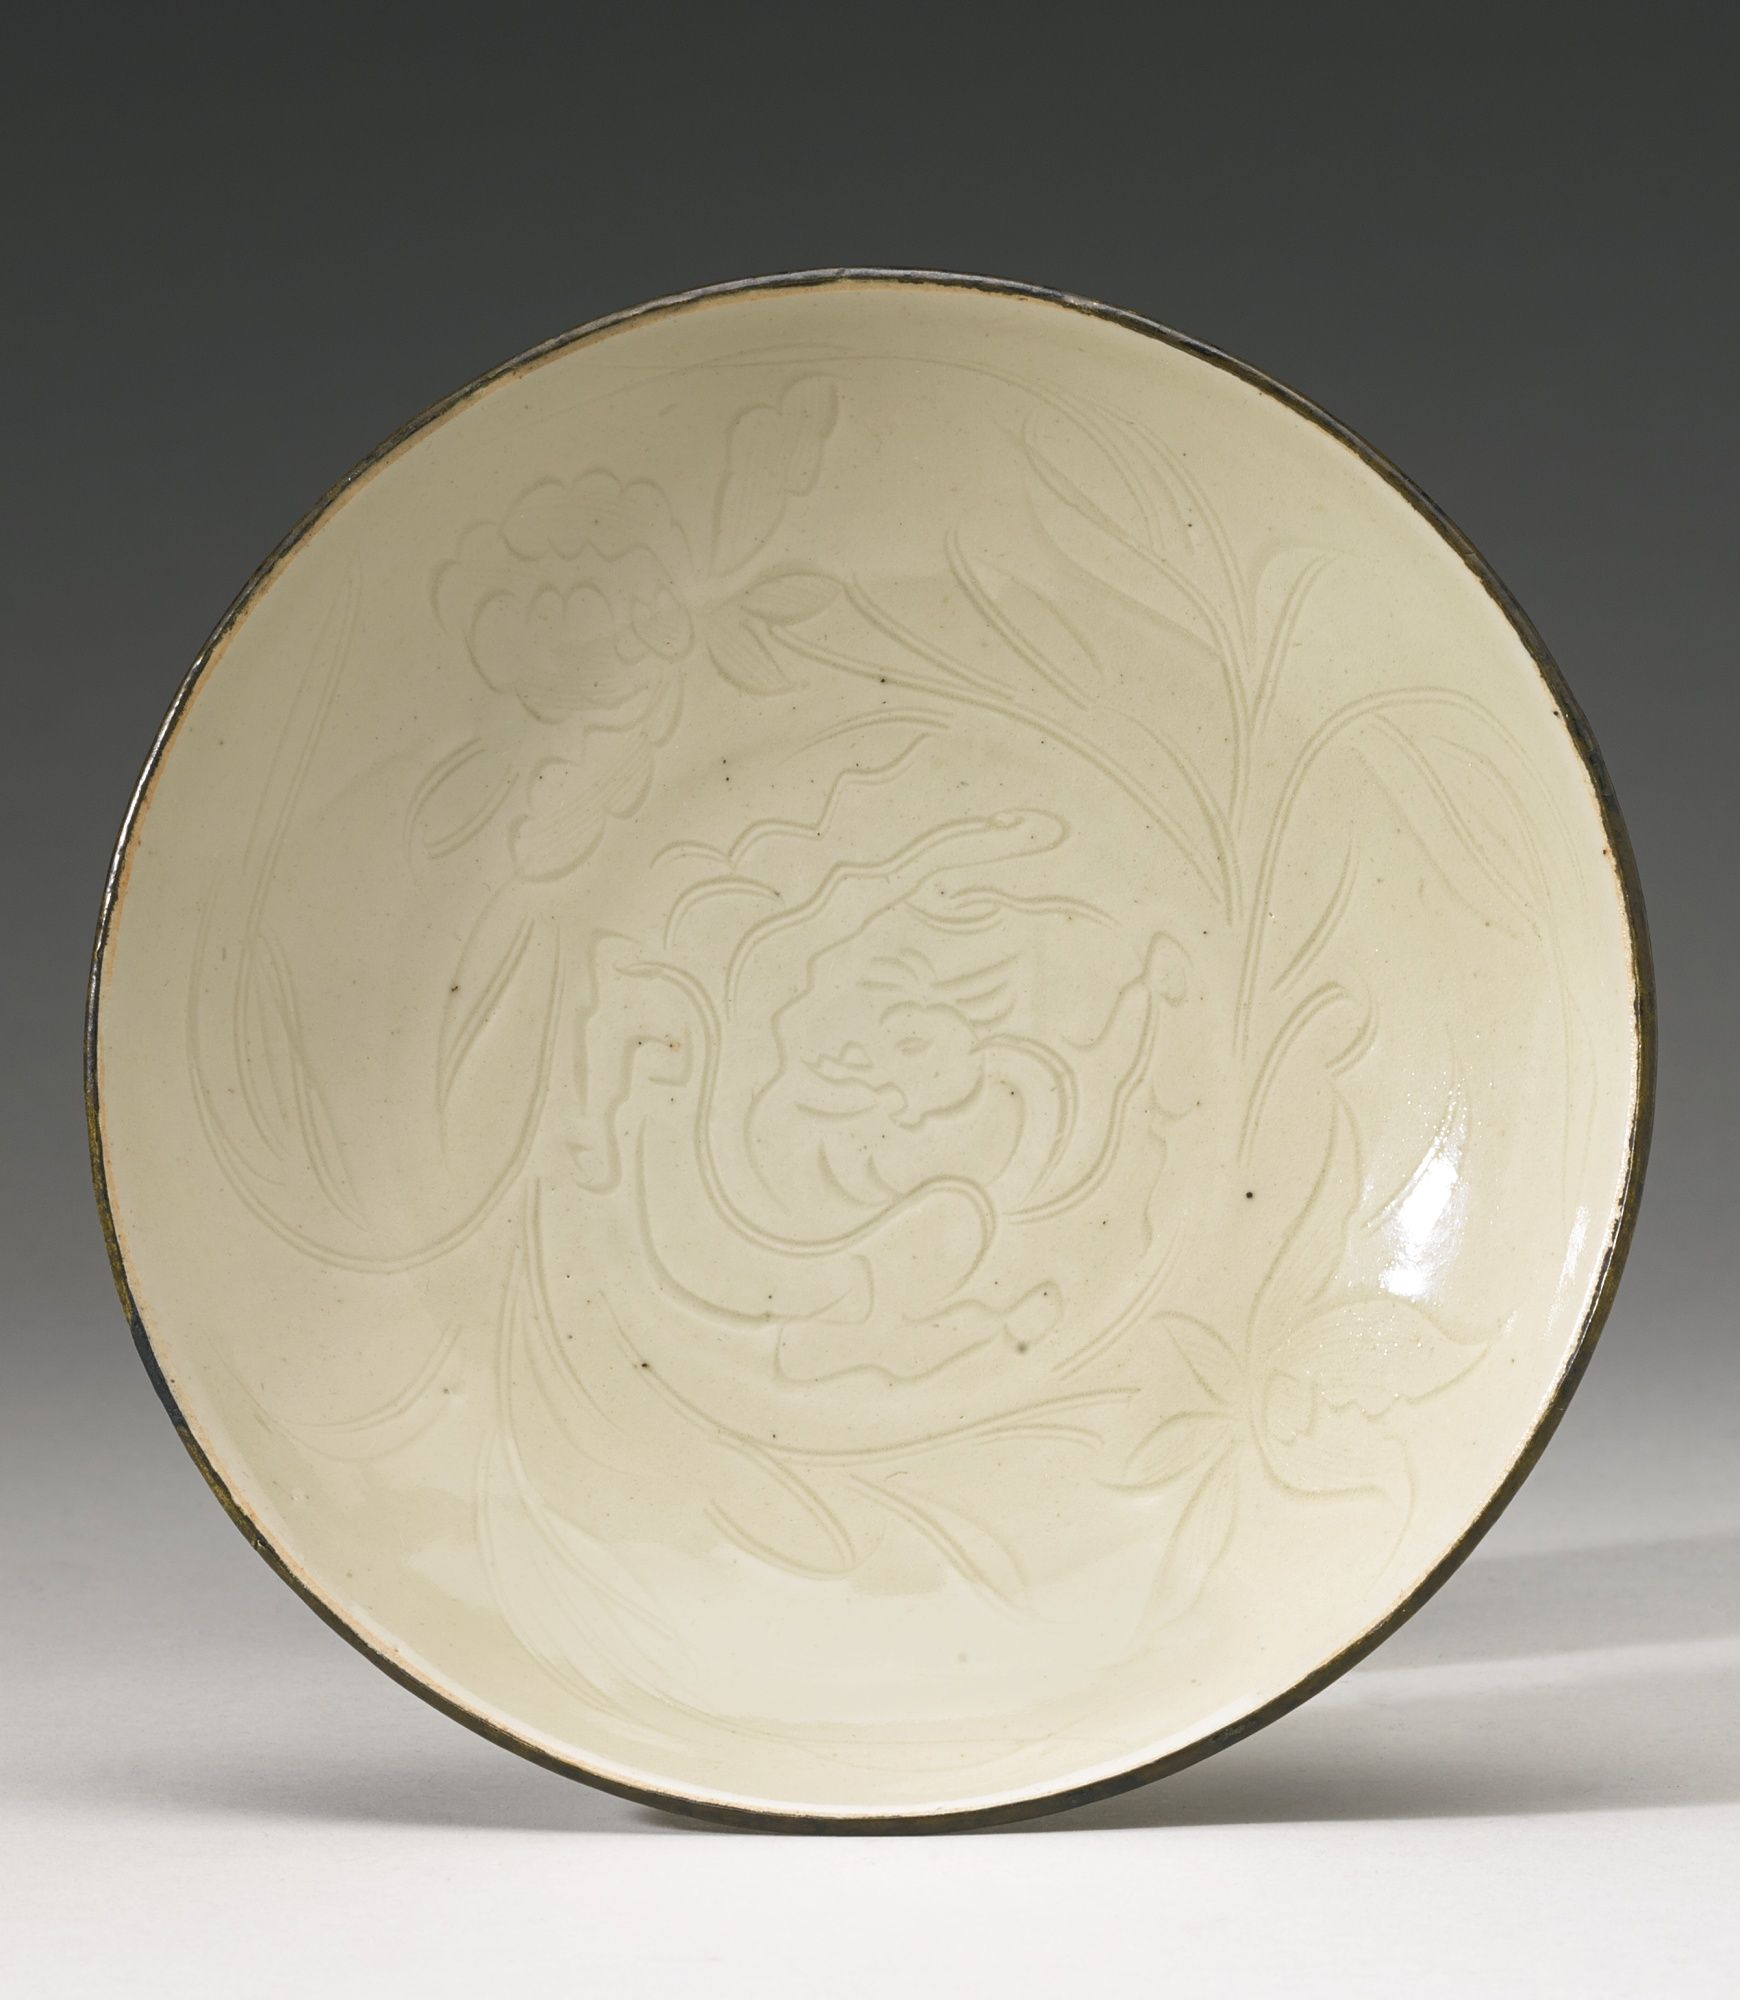 Lot 104  Sotheby's.  A RARE 'DING' DISH SONG DYNASTY of shallow saucer shape resting on a low wedge-shaped foot ring, the interior crisply carved with a chilong curled to form a medallion encircled by floral sprays, one bearing a large peony, the other a lotus, the petals with delicately incised and combed details, the underside plain, all under an ivory glaze, the rim bound in metal Diameter 5 5/8  in., 14.3 cm